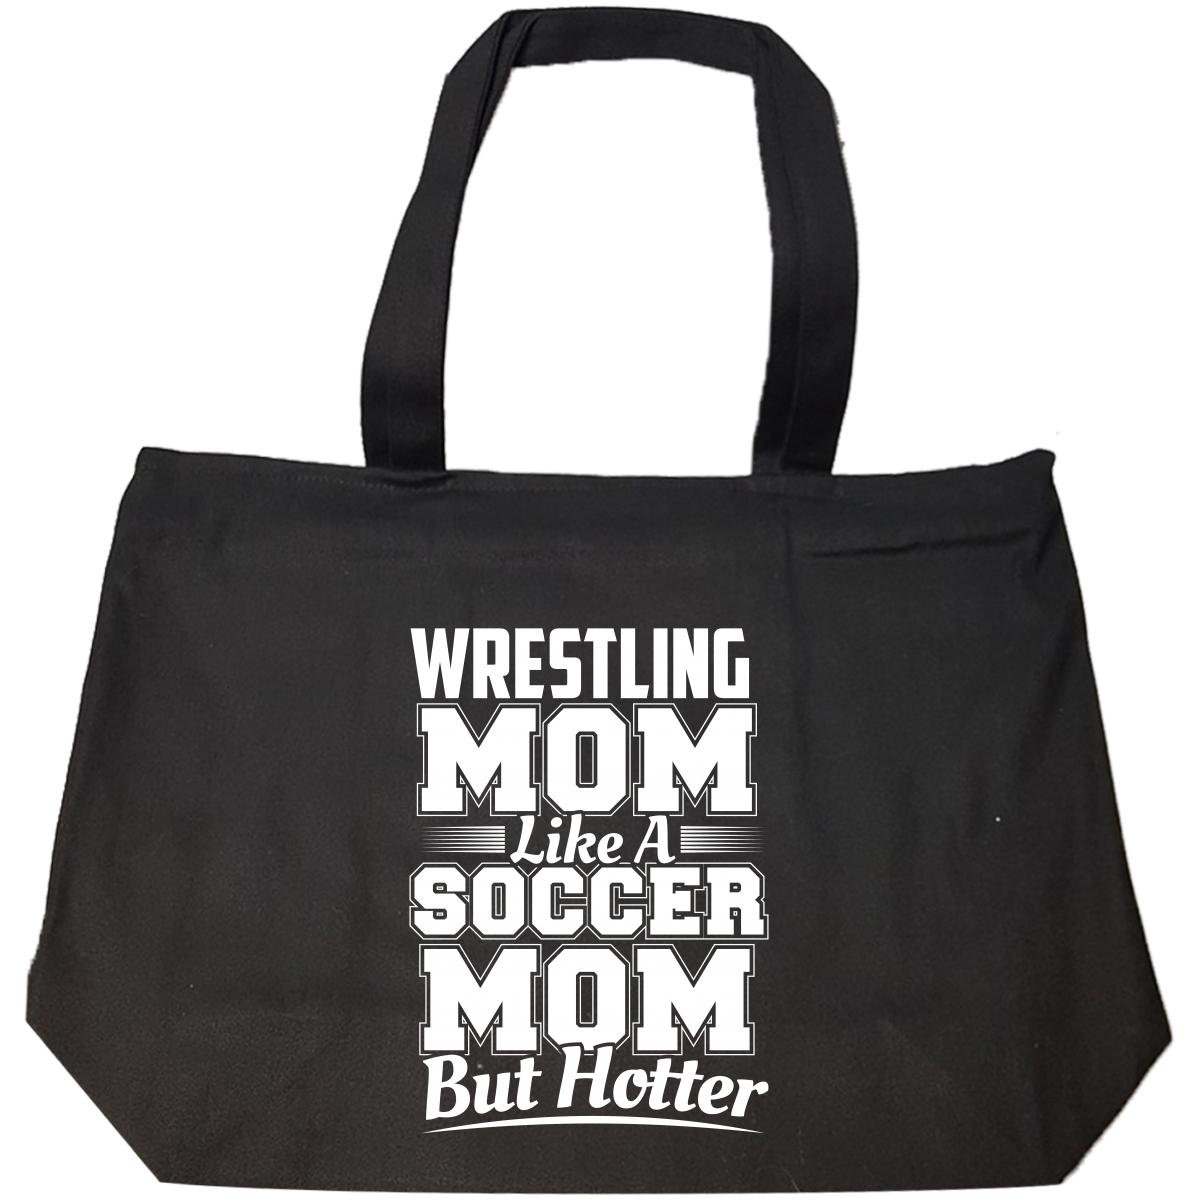 Wrestling Mom Like A Soccer Mom But Hotter - Tote Bag With Zip by Brands Banned